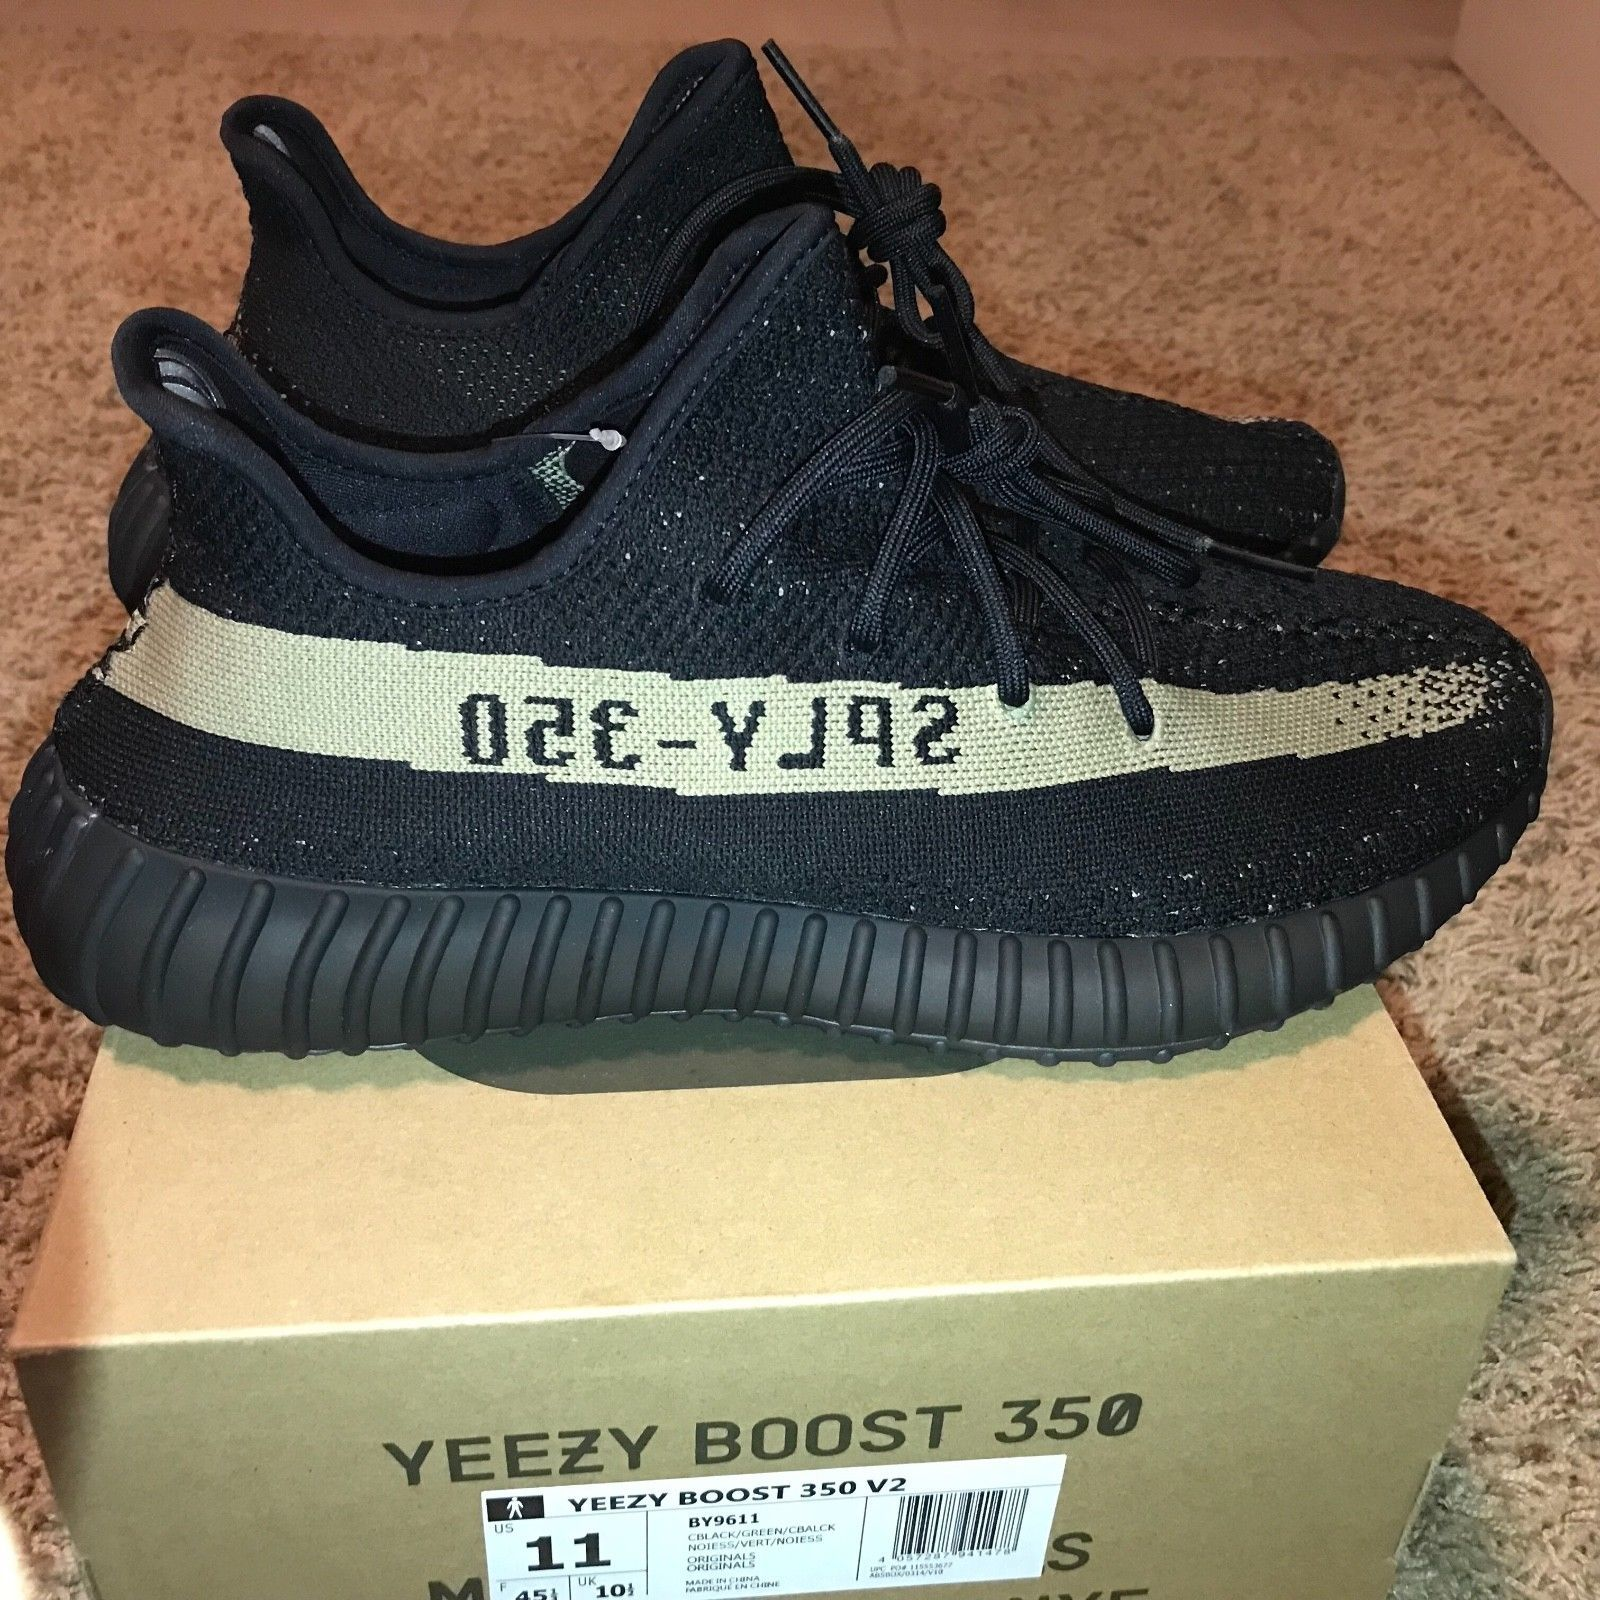 low priced 89414 8cc1c Adidas Yeezy Boost 350 V2 Core Black Green Olive BY9611 (Size 11) Zebra  Kanye